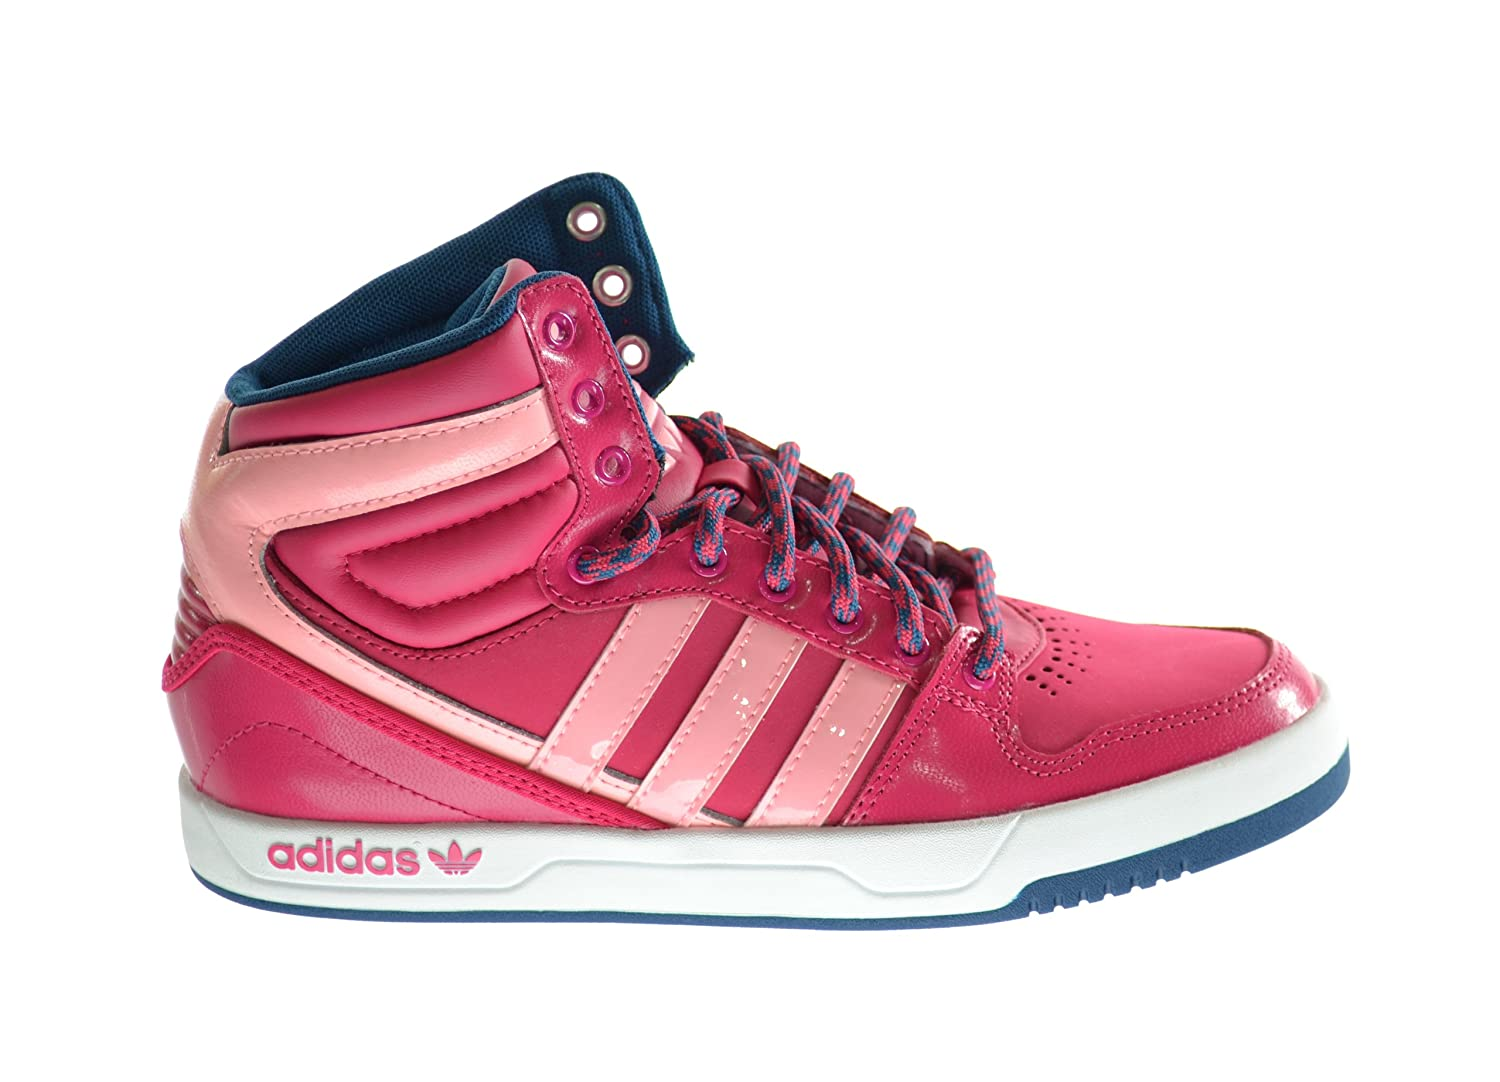 wholesale dealer cd683 a7041 Amazon.com Adidas Originals Court Attitude Big Kids Basketball Shoes Glow  PinkRunning White g99920 Shoes